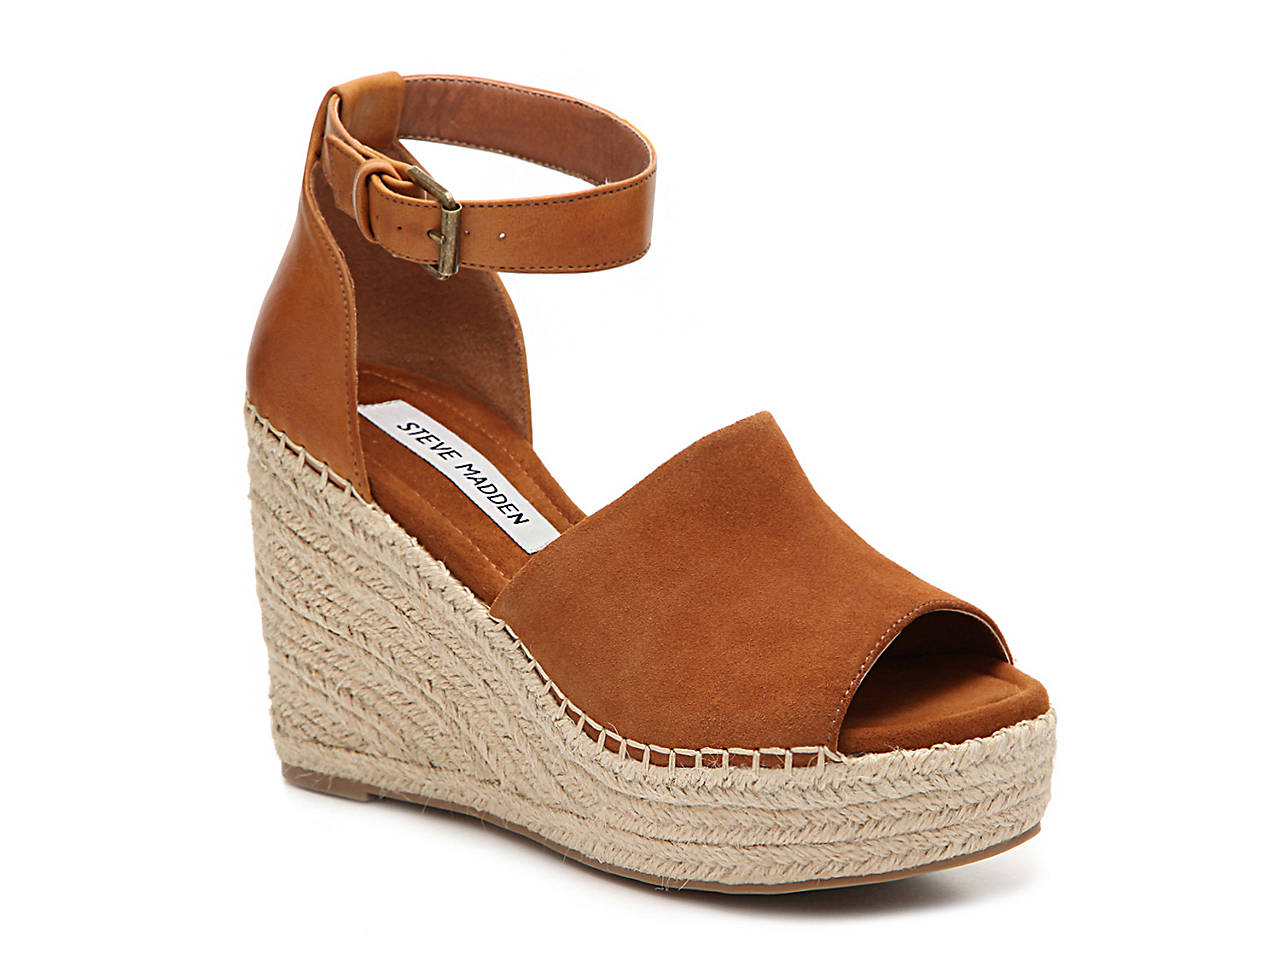 Steve Madden Jaylen Wedge Sandal Women's Shoes | DSW